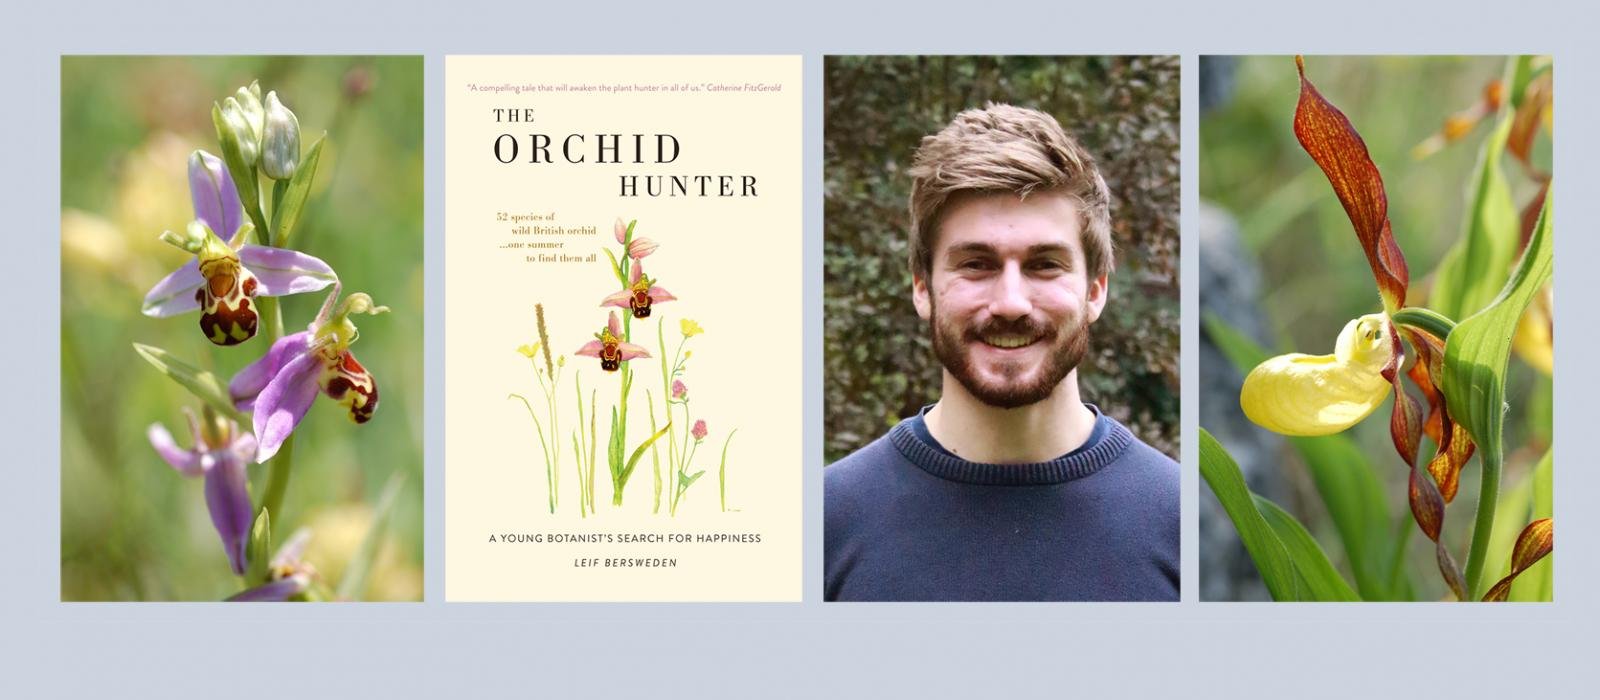 Leif Bersweden and his new book, The Orchid Hunter